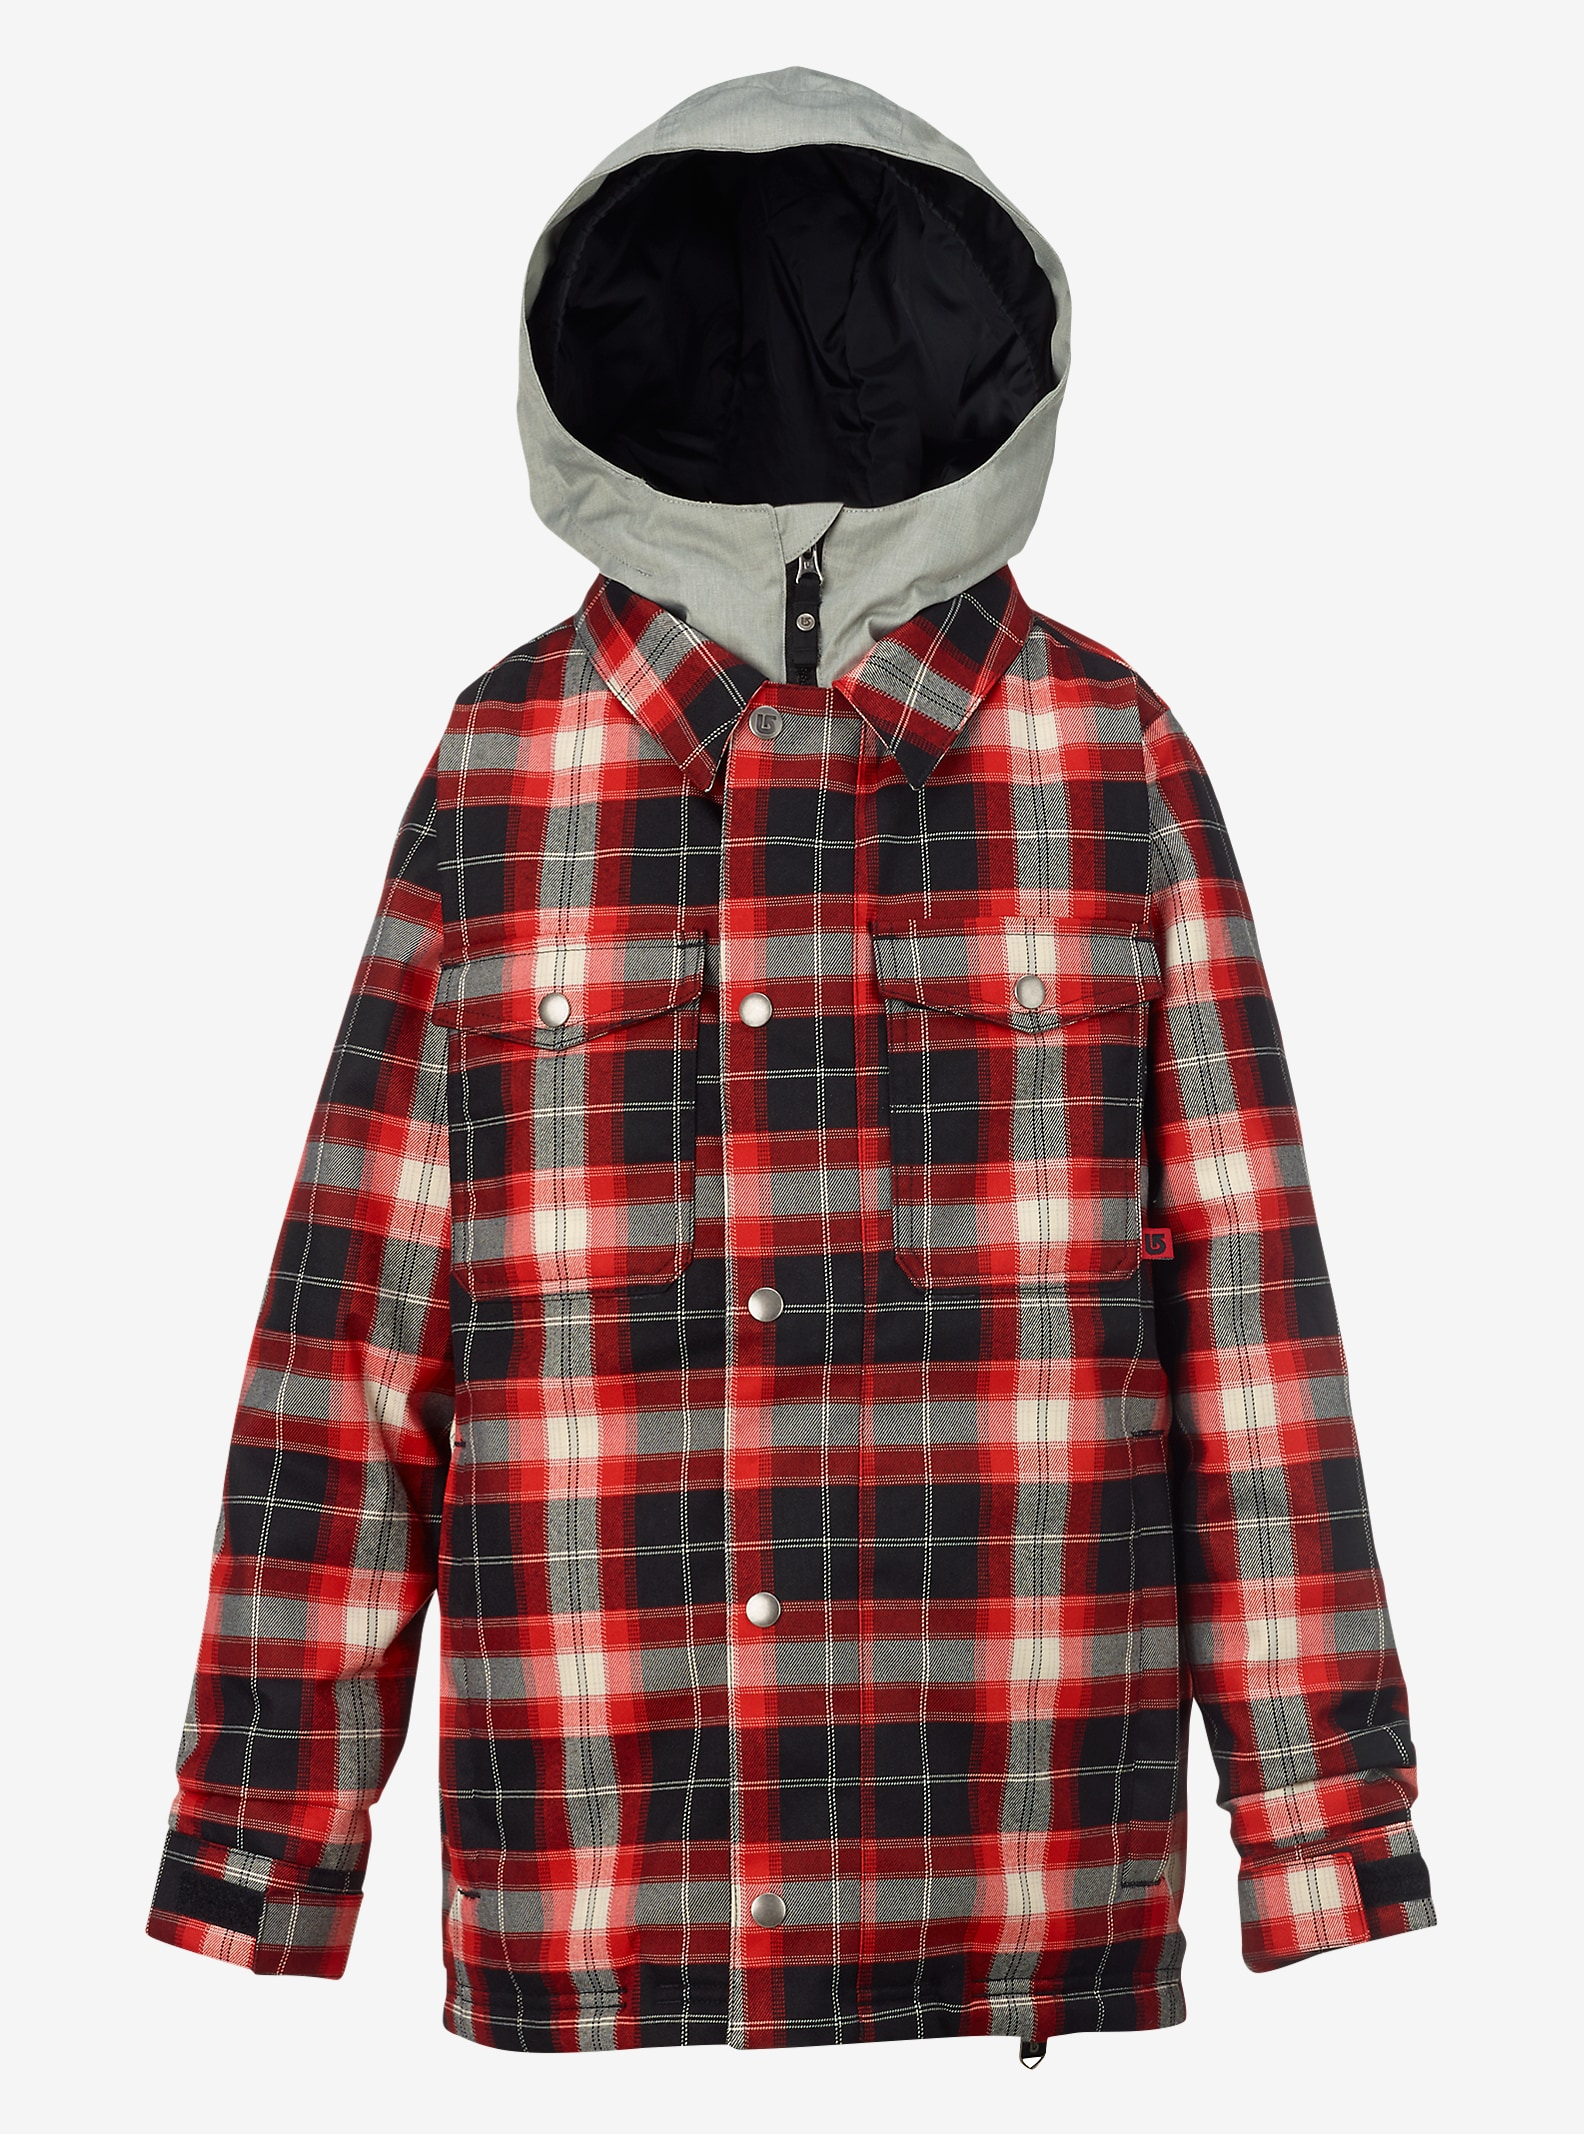 Burton Boys' Uproar Jacket shown in Process Red Miked Plaid